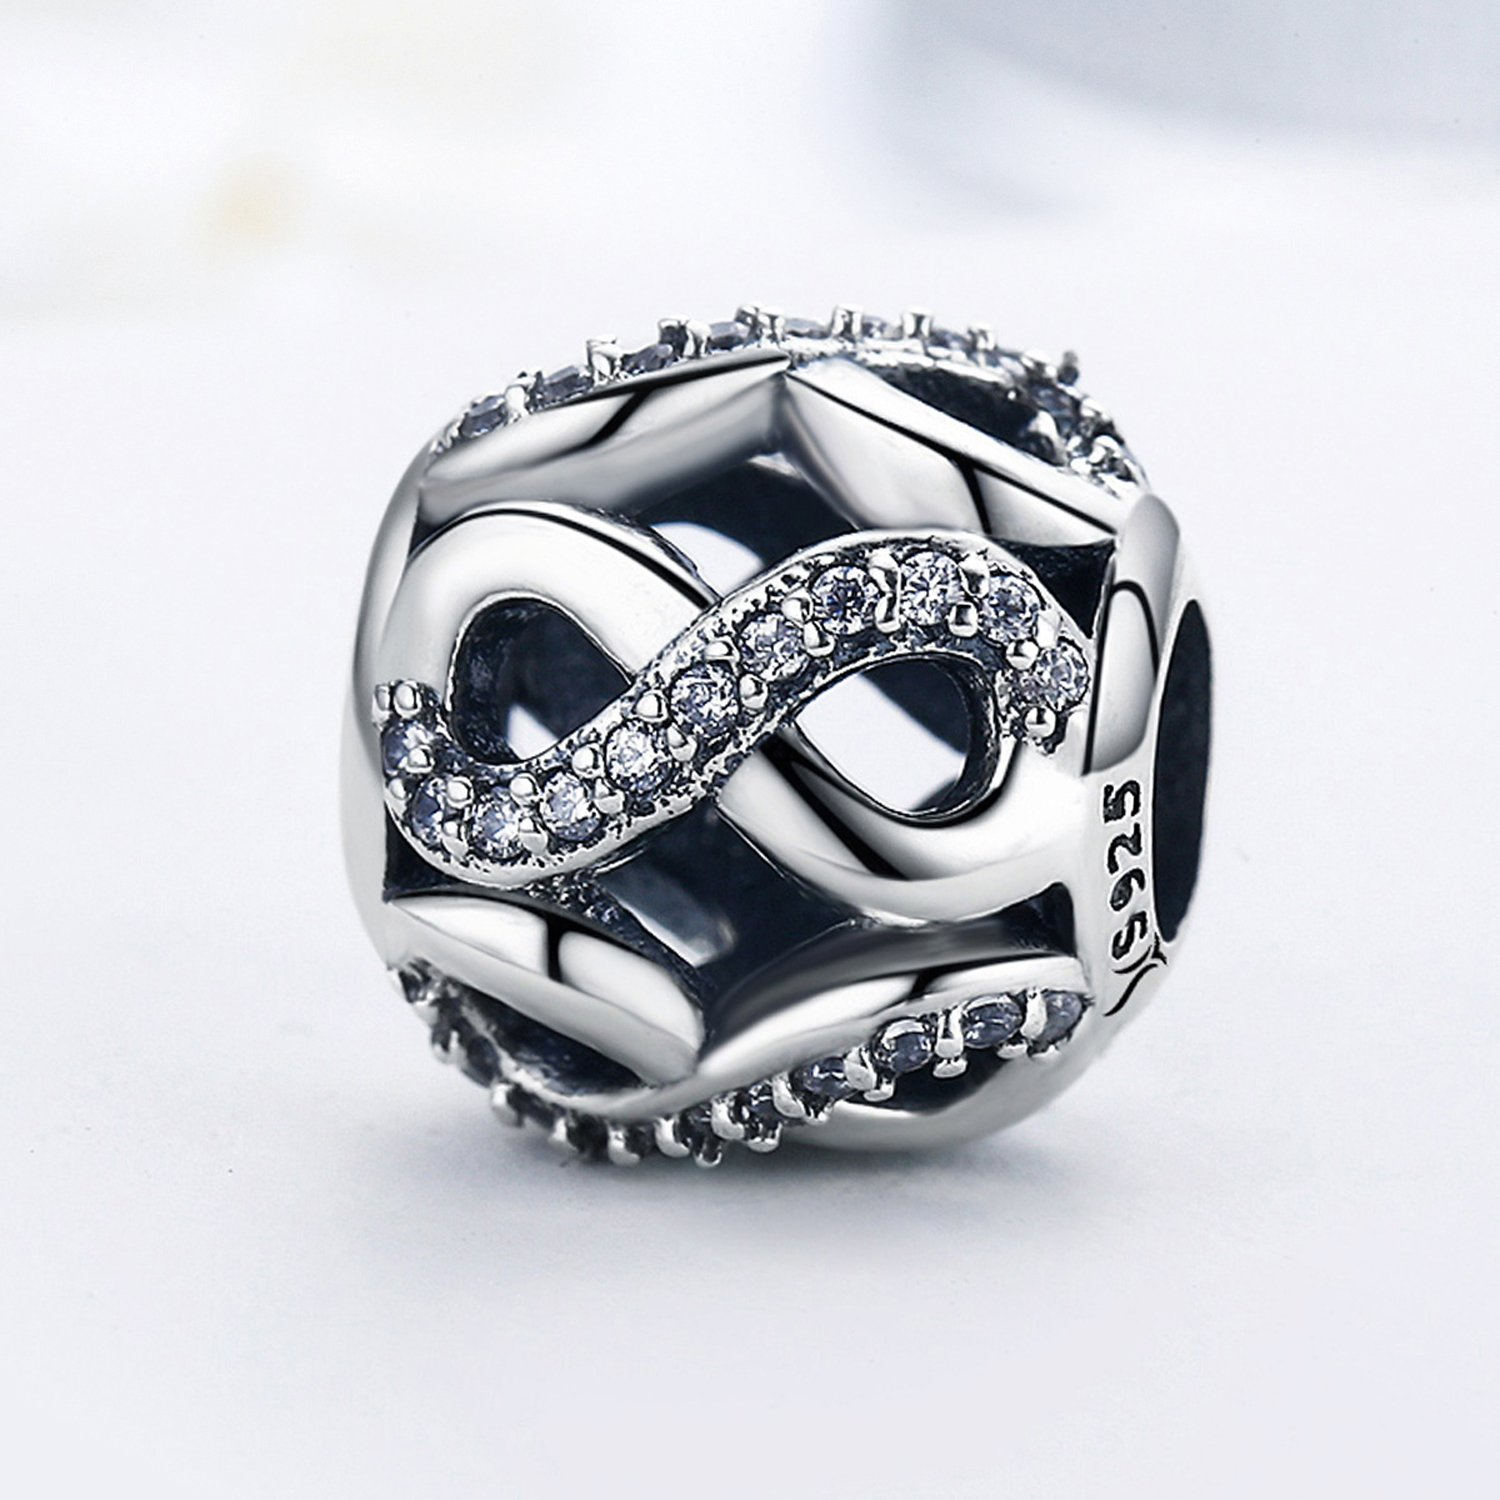 Sterling Silver Infinity Love Bead Charms,Shine Openwork Charm Beads with AAA CZ Fit Snake Chain Bracelet (Infinity Love Charm) by XingYue Jewelry (Image #4)